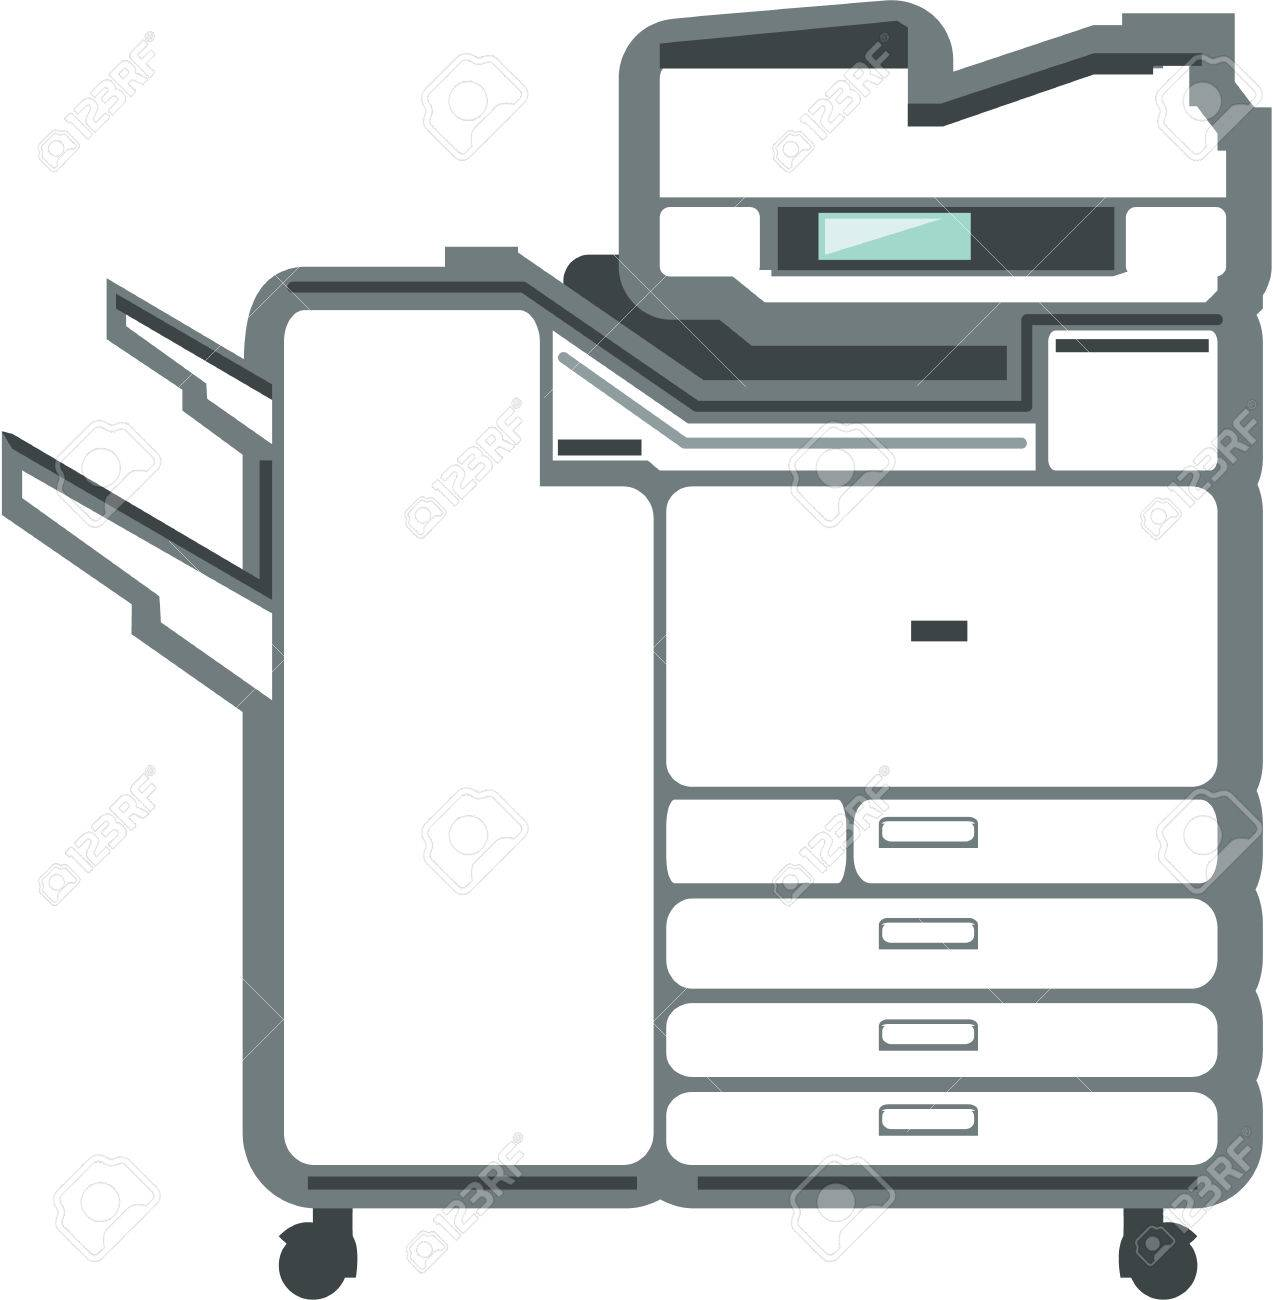 large printer office equipment vector illustration clip art royalty rh 123rf com computer printer clipart printer clipart black and white